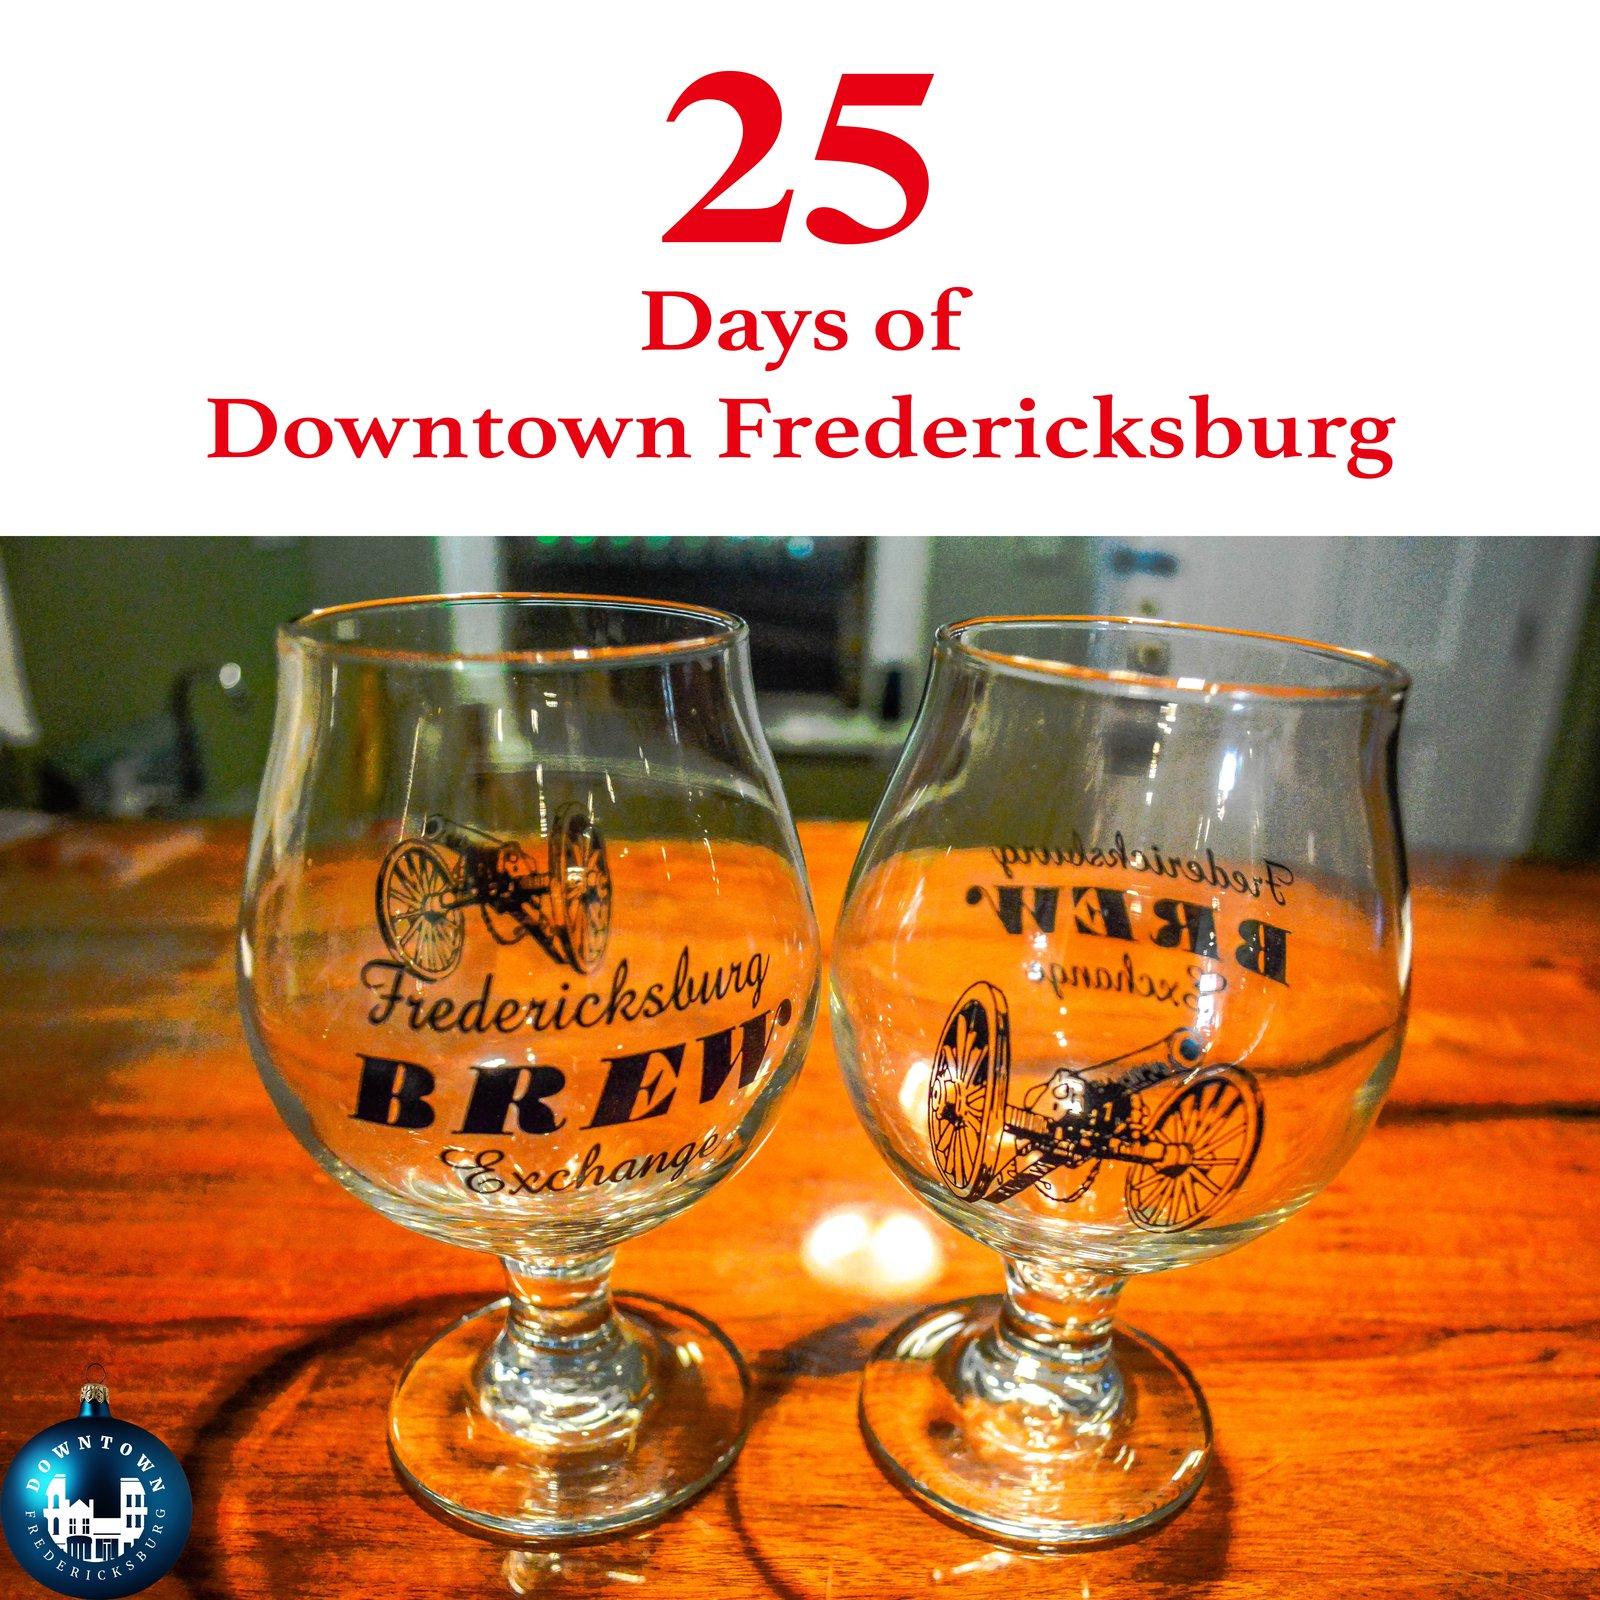 Gift Seven Merry Christmas and cheers to Fredericksburg Brew Exchange. www.facebook.com/DowntownFredericksburg  25 Days of Downtown Fredericksburg